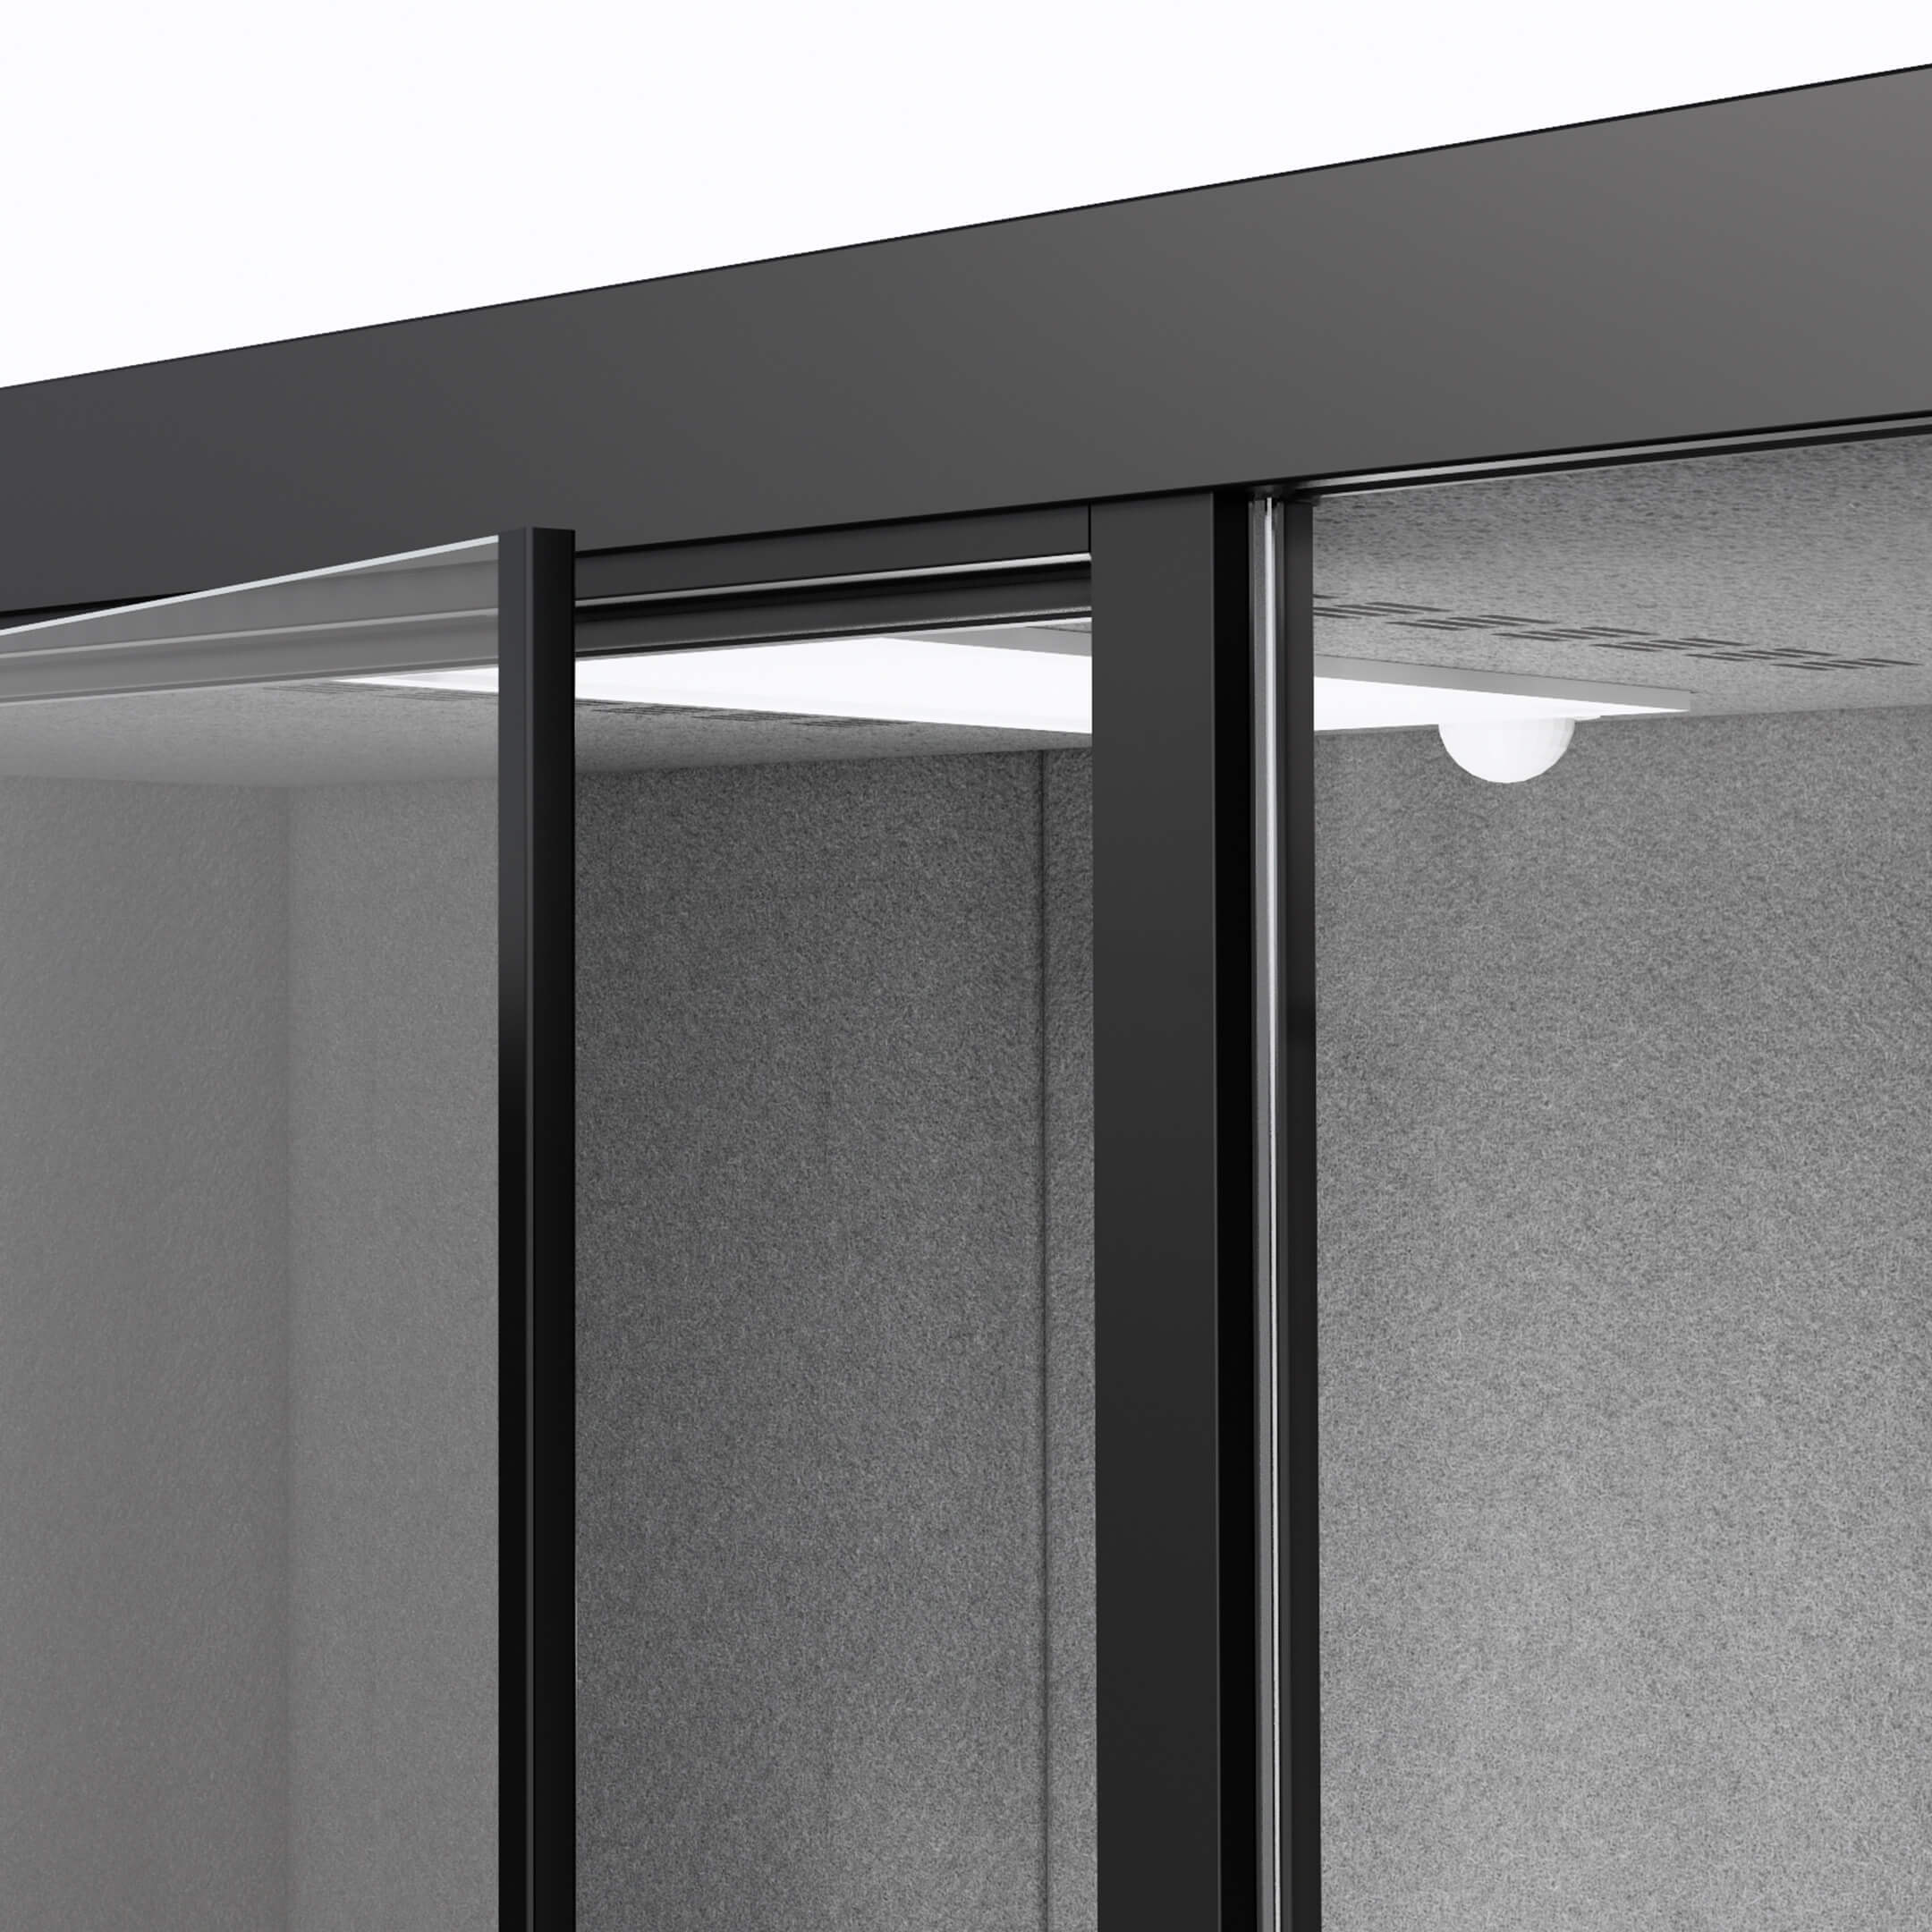 CHATBOX DUO-DOOR AND FRAME